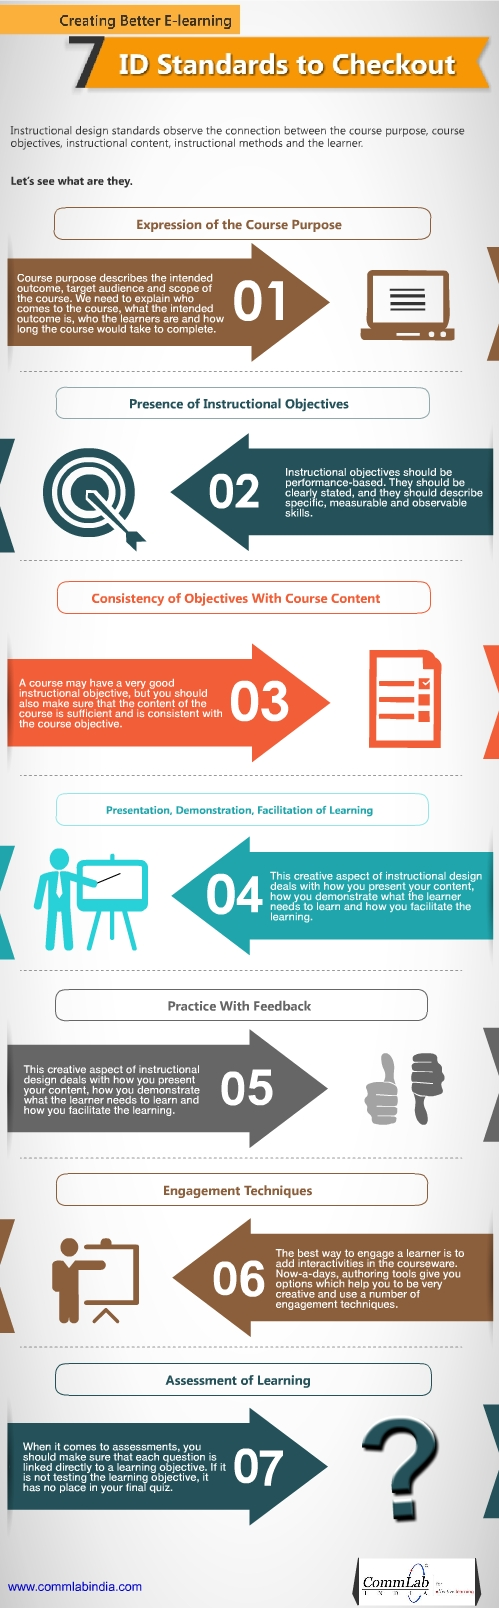 Creating Better E-learning: 7 ID Standards to Checkout - An Infographic